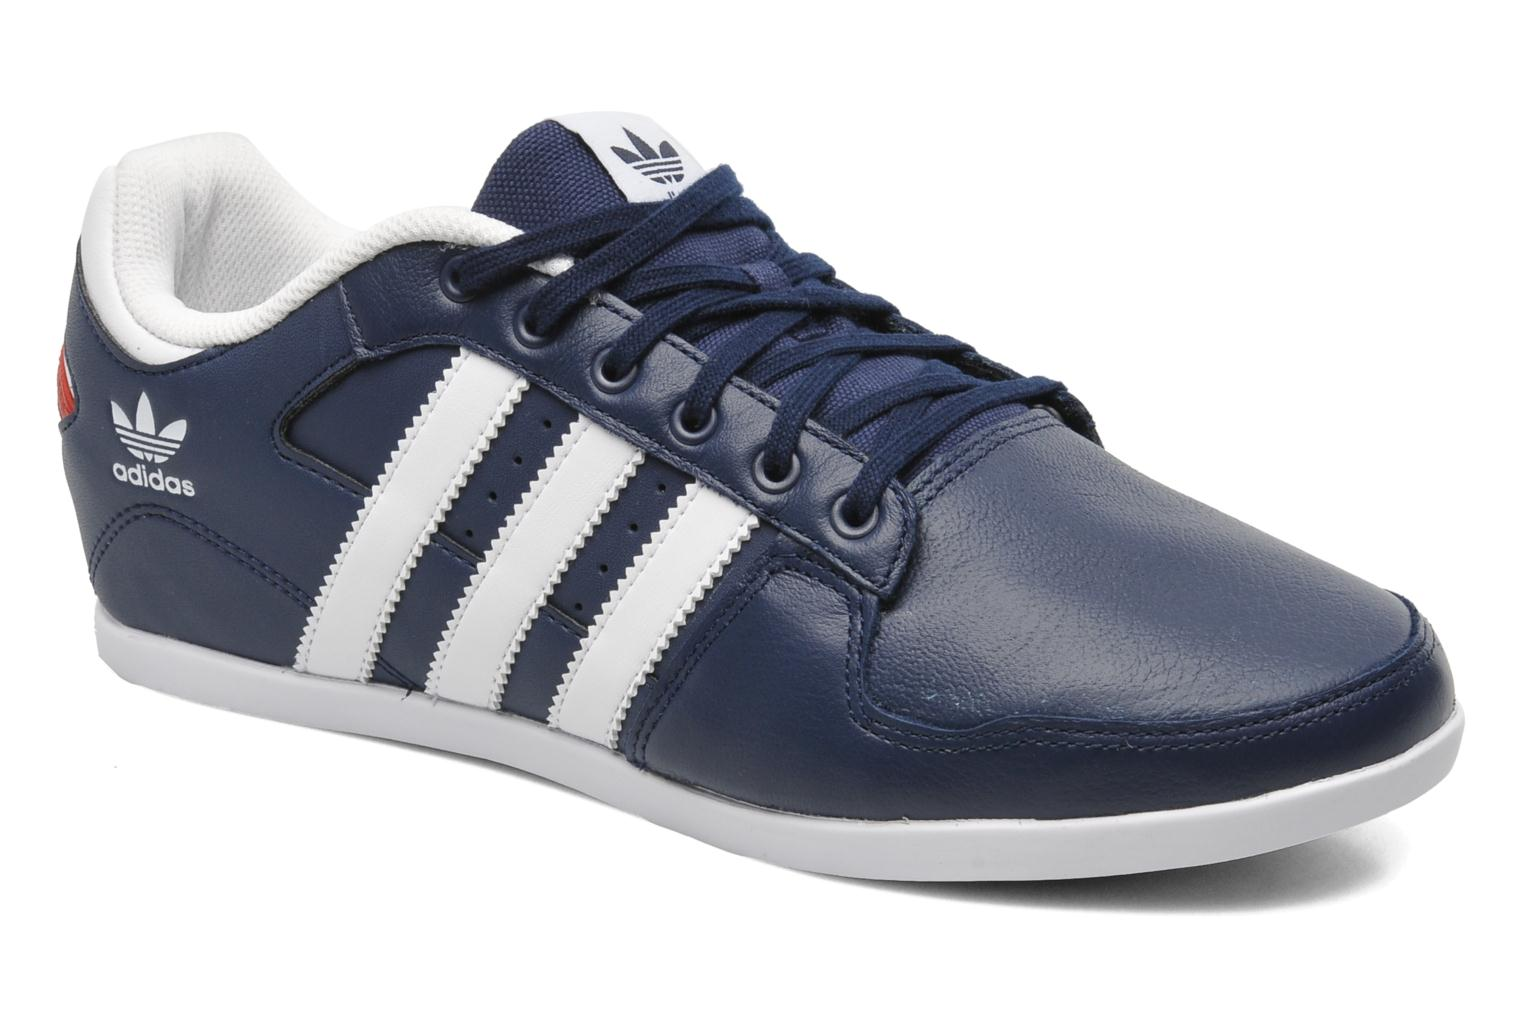 Plimcana 2.0 Low Collegiate Navy-Running White Ftw-University Red